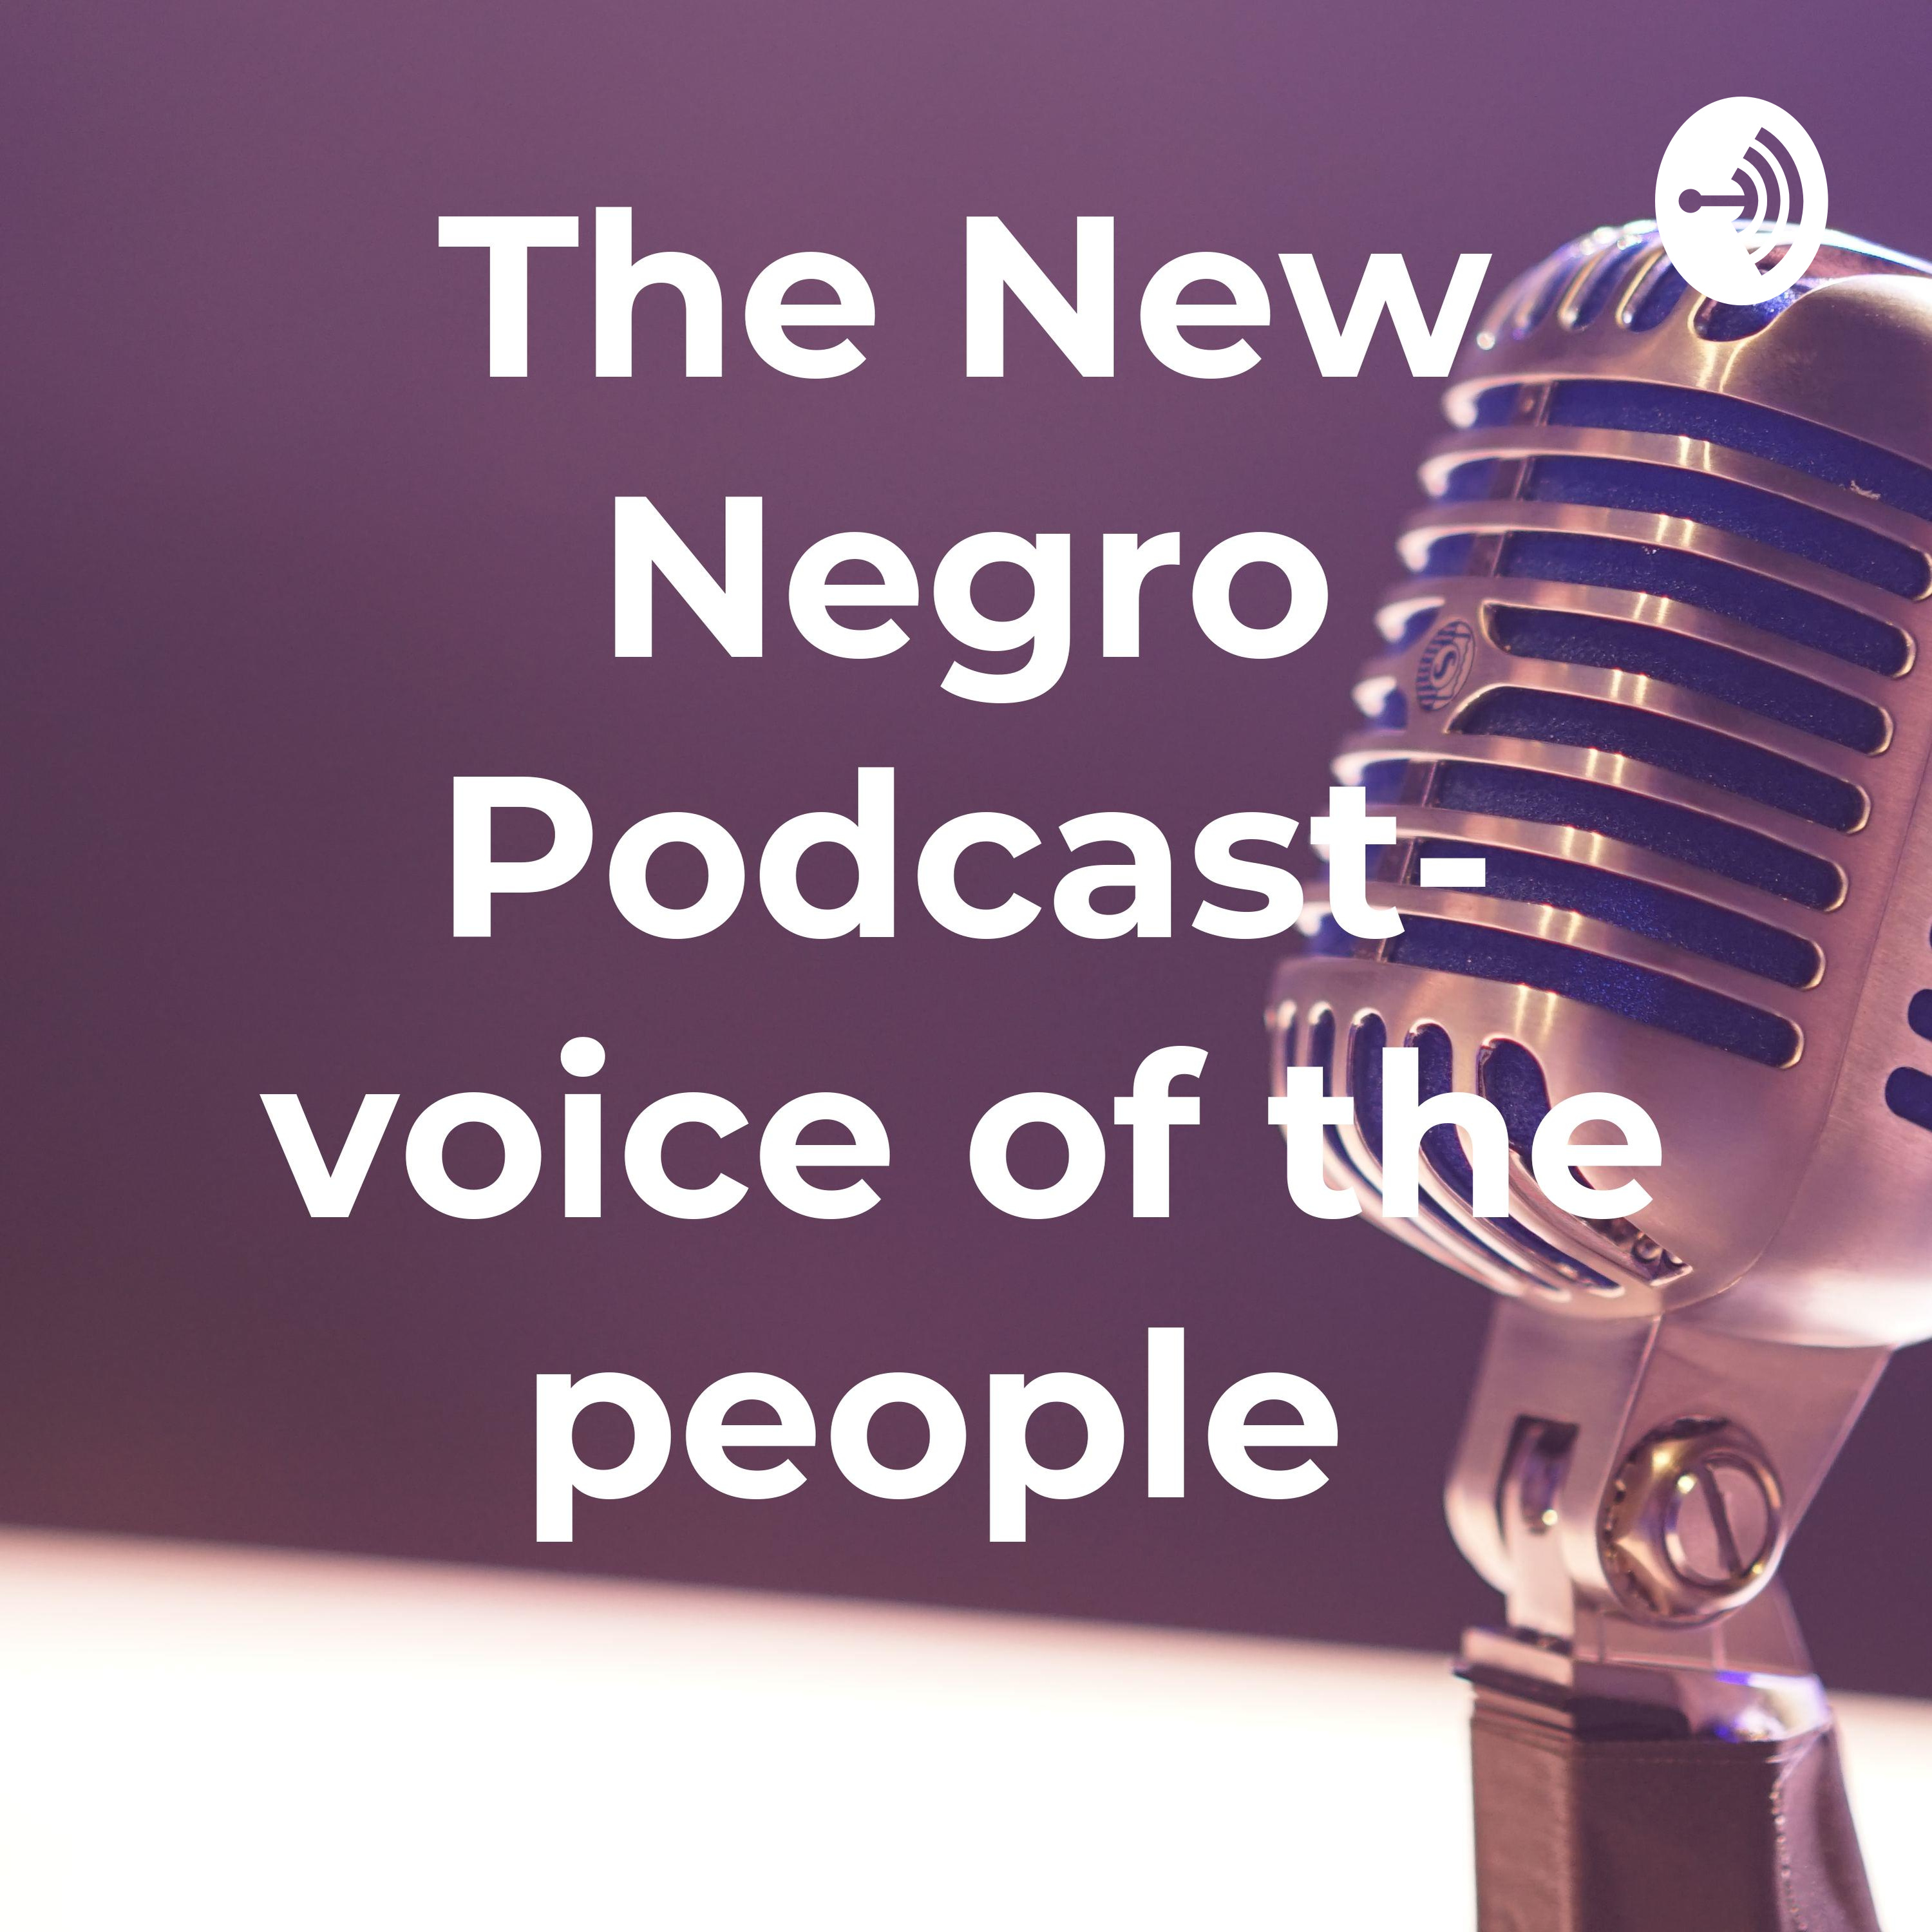 The New Negro Podcast /the Voice For The People